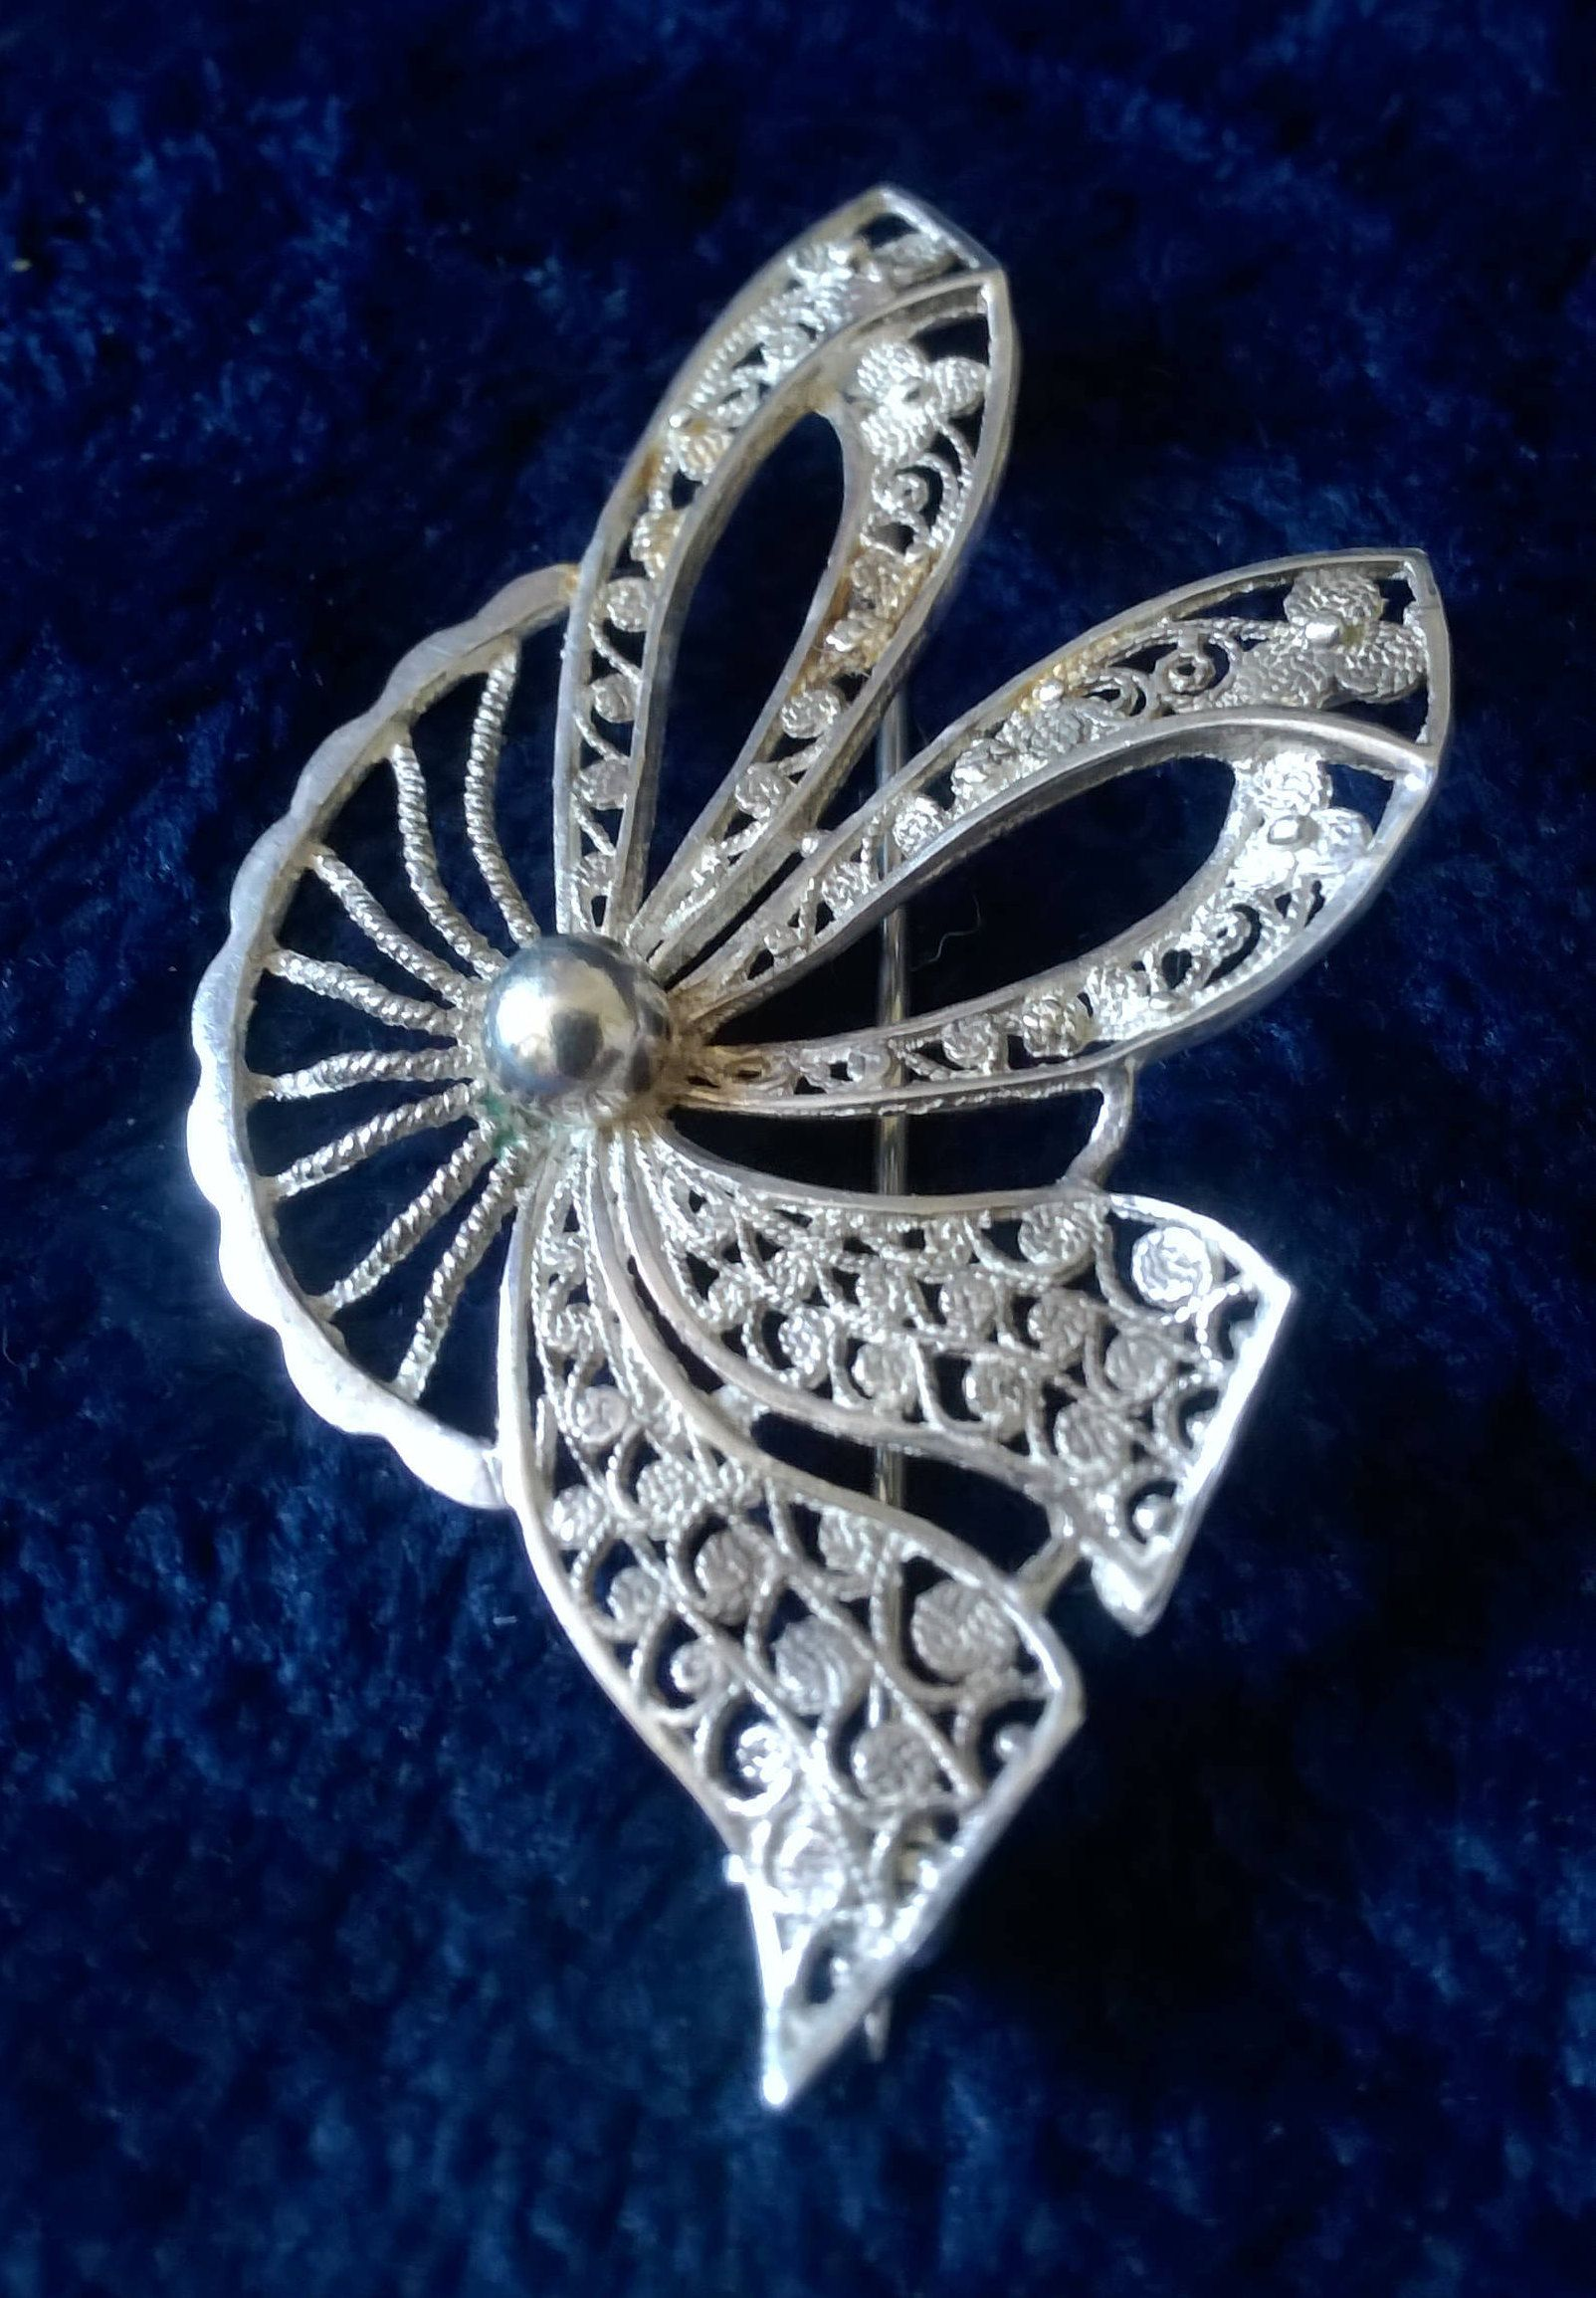 Unknown Period Vintage Filagree Sterling Silver Brooch. Vintage & Antique Jewelry